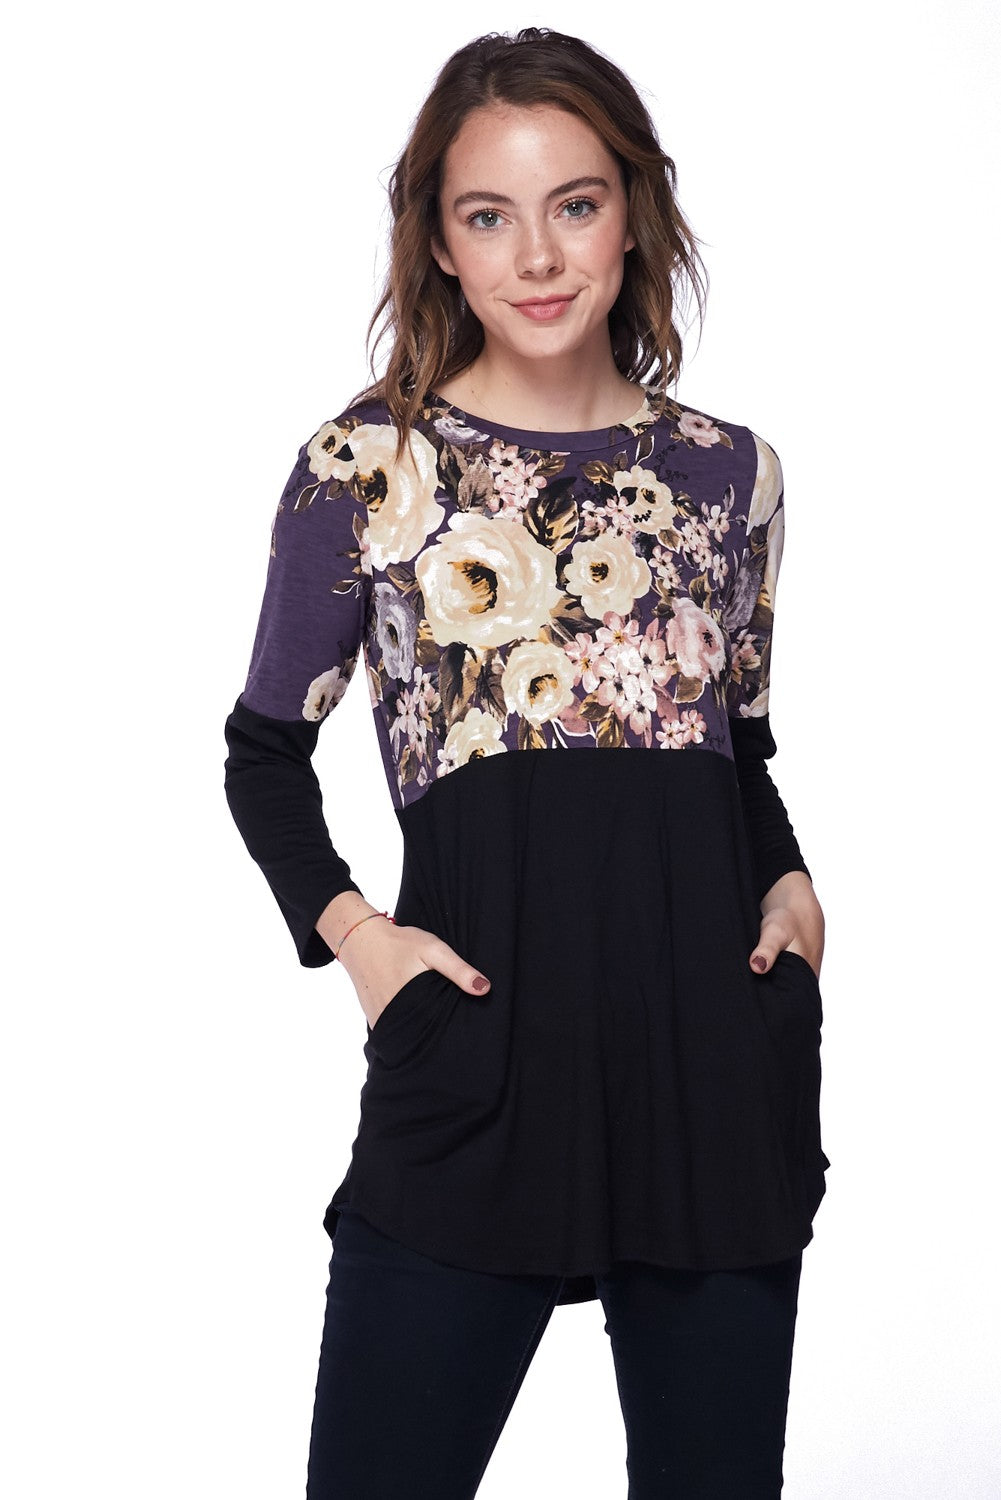 Block Knit Floral Top With Pockets *FINAL SALE*